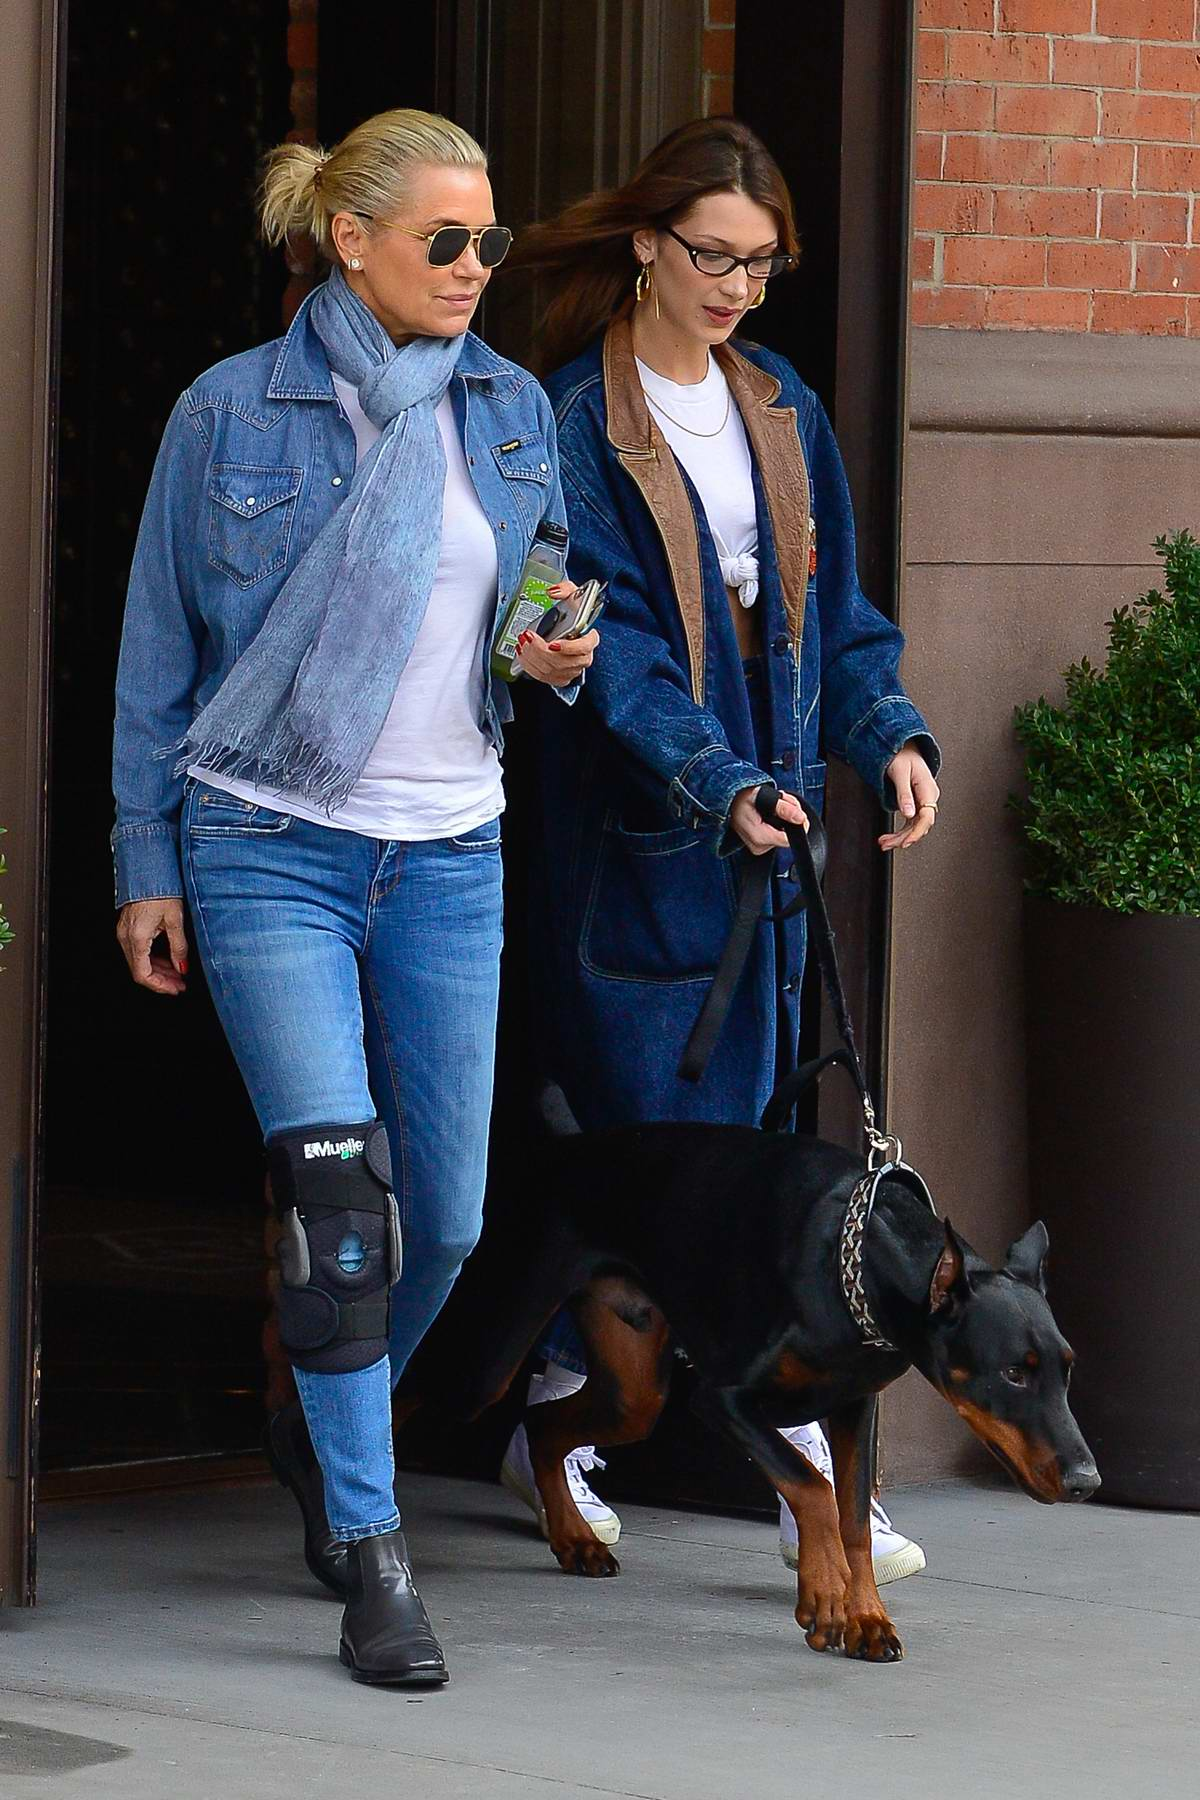 Bella Hadid Steps Out With Her Mother Yolanda Hadid And Her